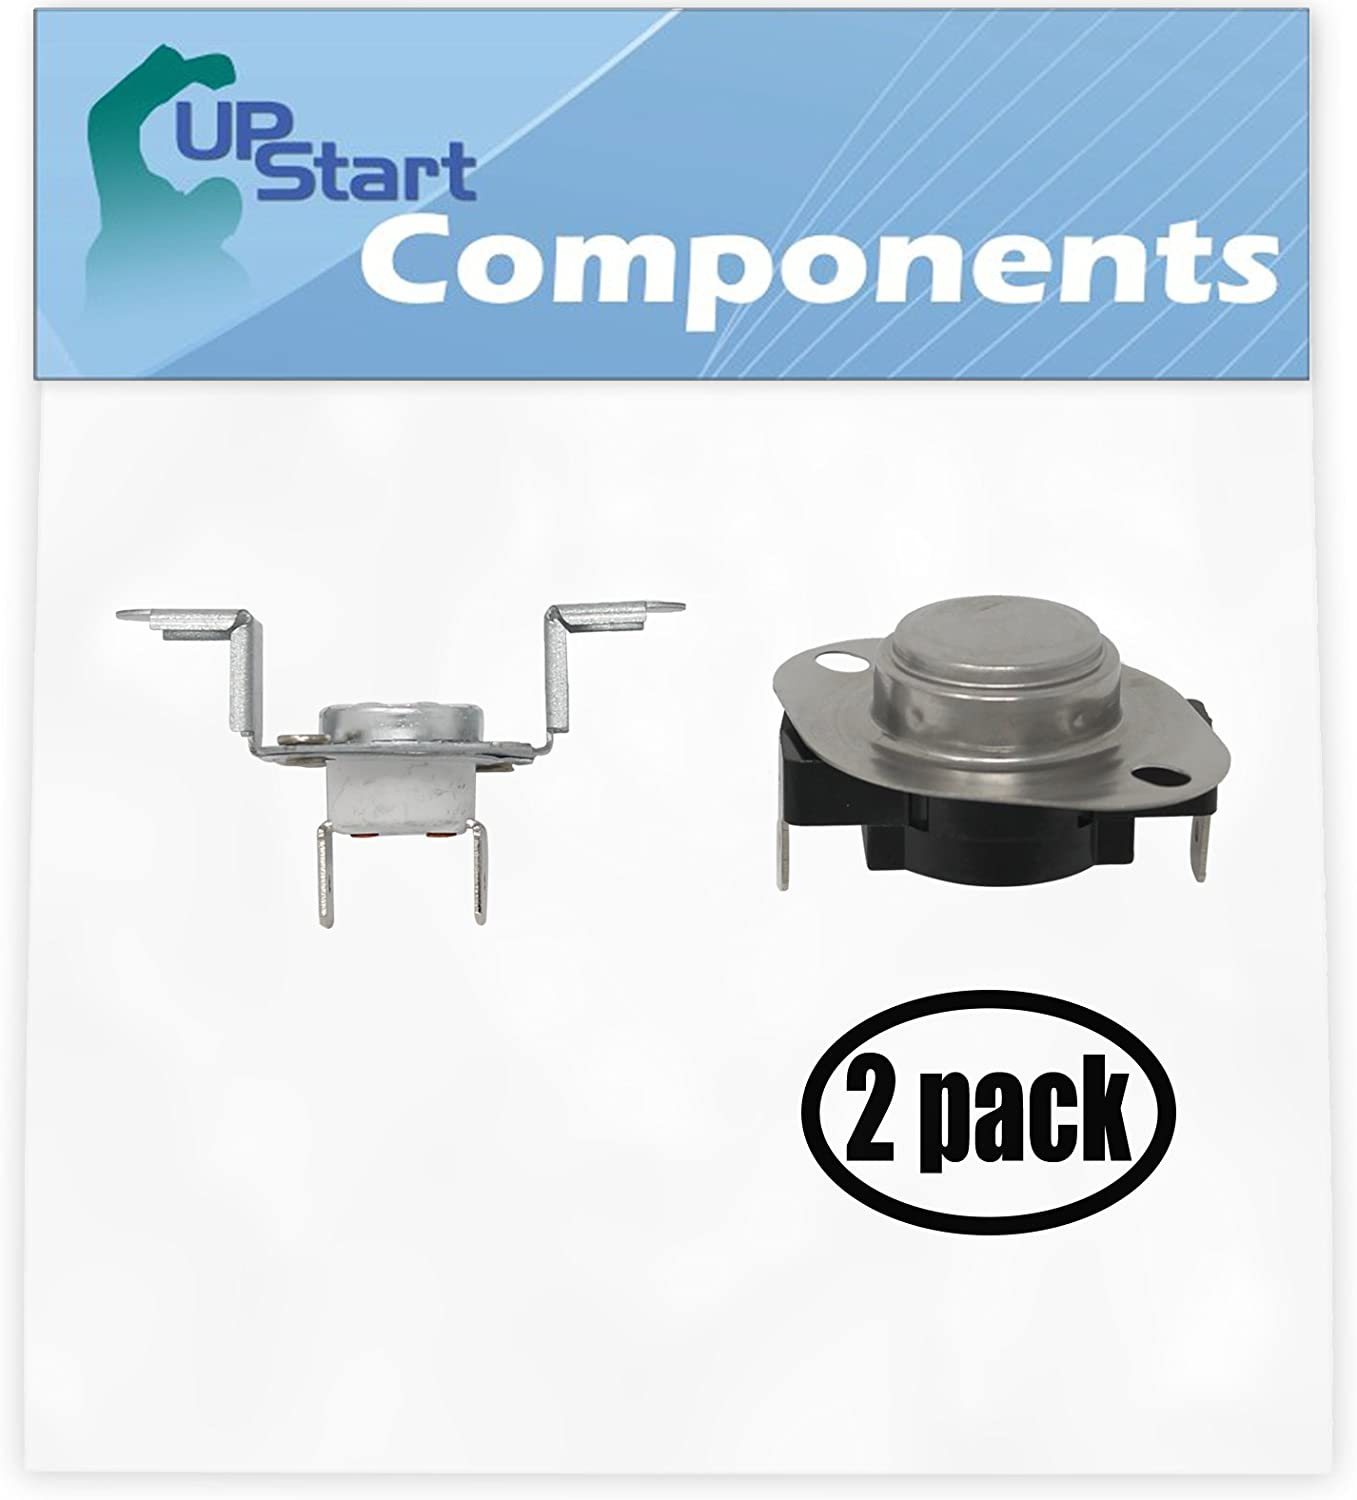 """2 Pack Replacement 279973 Thermostat and Thermal Cut-Off Kit for Whirlpool WED9750WW0 27"""" Residential Electric Dryer"""